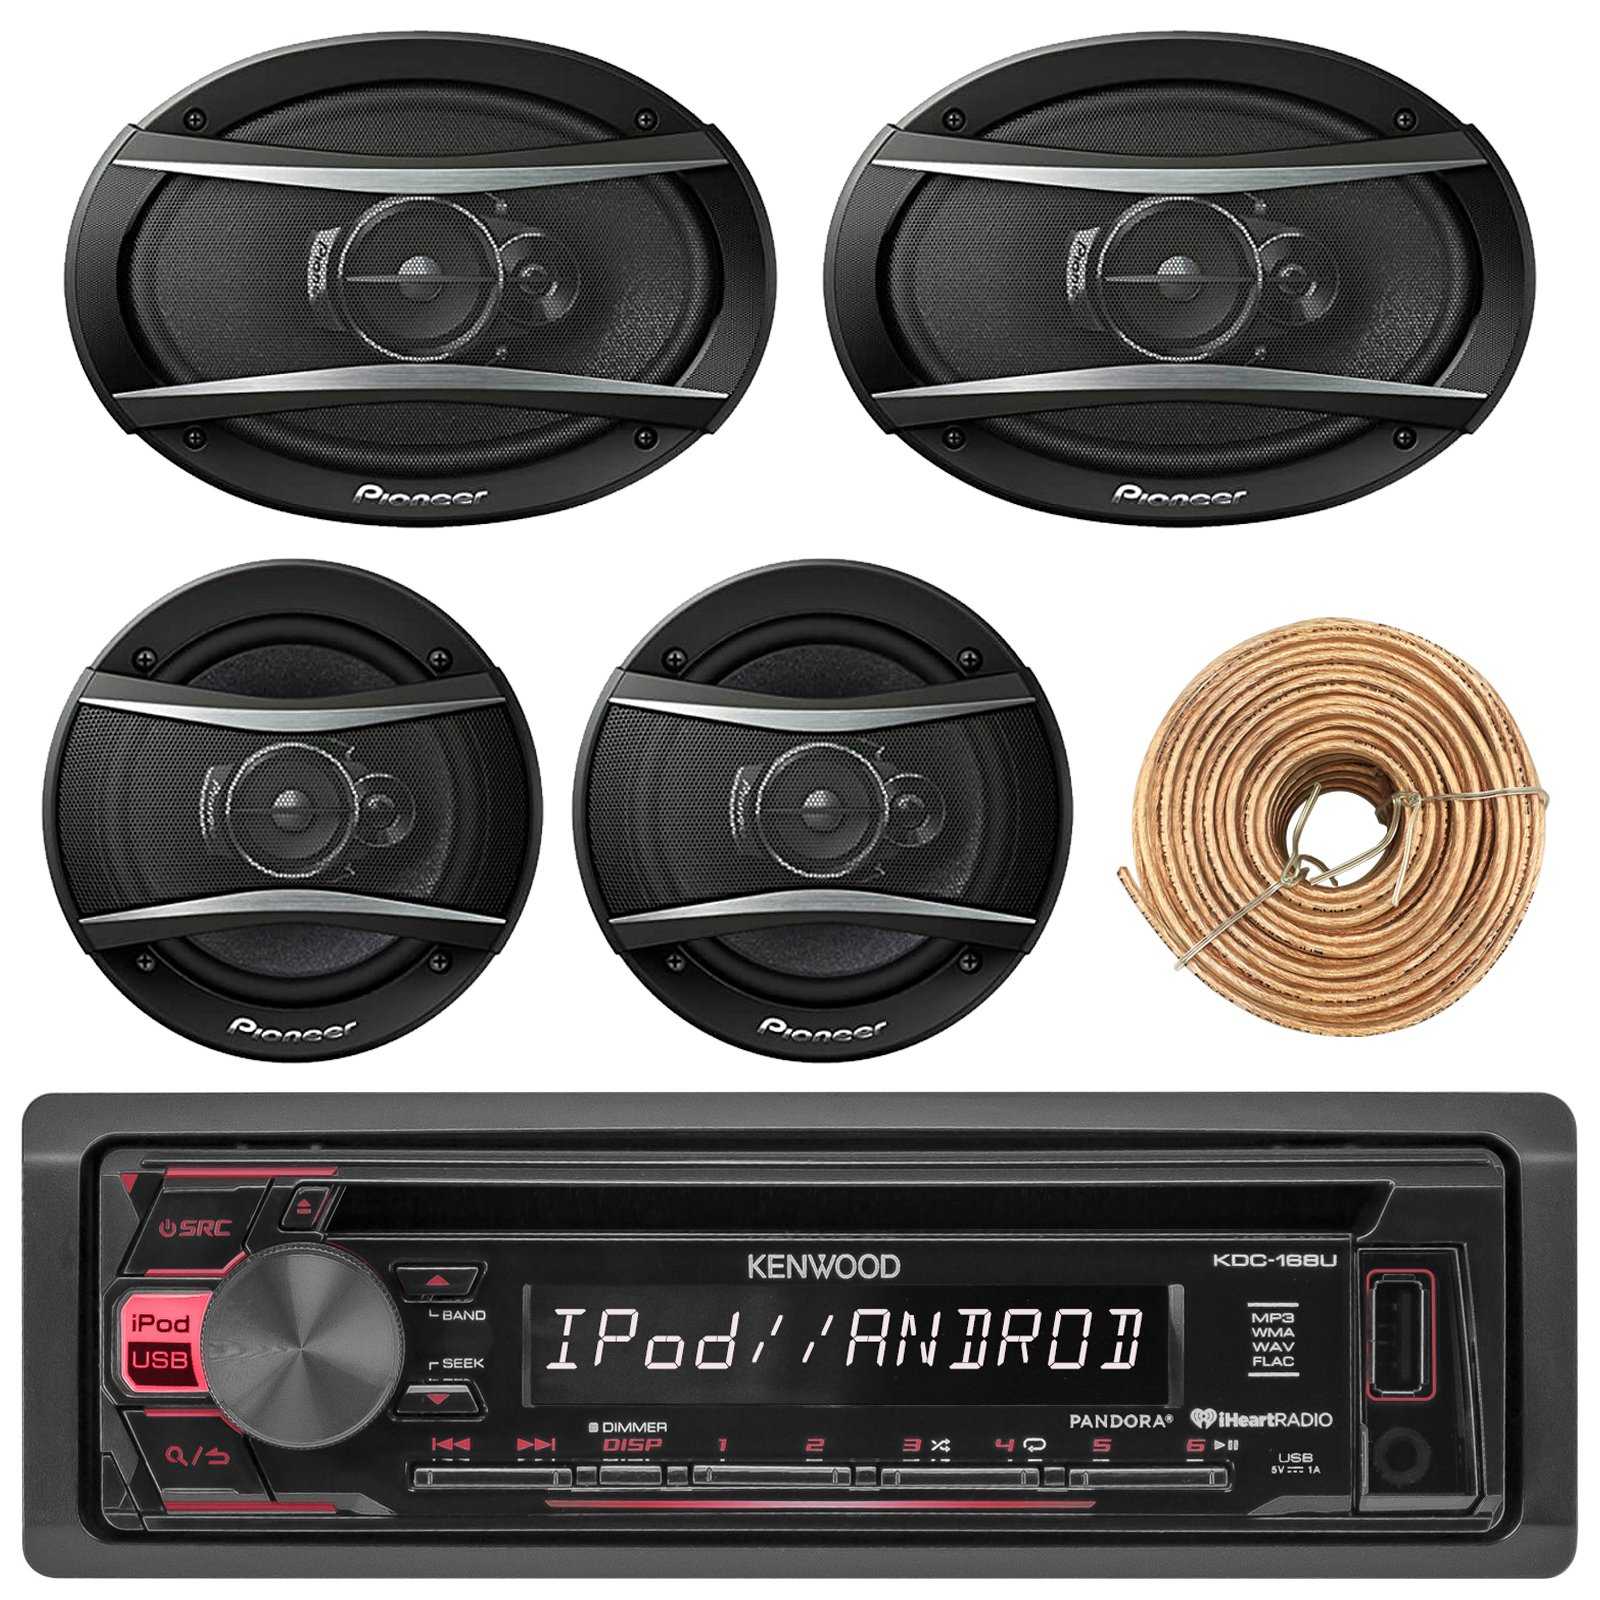 Kenewood KDC168U Car Radio USB AUX CD Player Receiver - Bundle With 2x TSA1676R 6.5'' 3-Way Car Audio Speakers - 2x 6.5''-6.75'' 4-Way Stereo Speaker + Enrock 50Ft 18 Gauge Speaker Wire